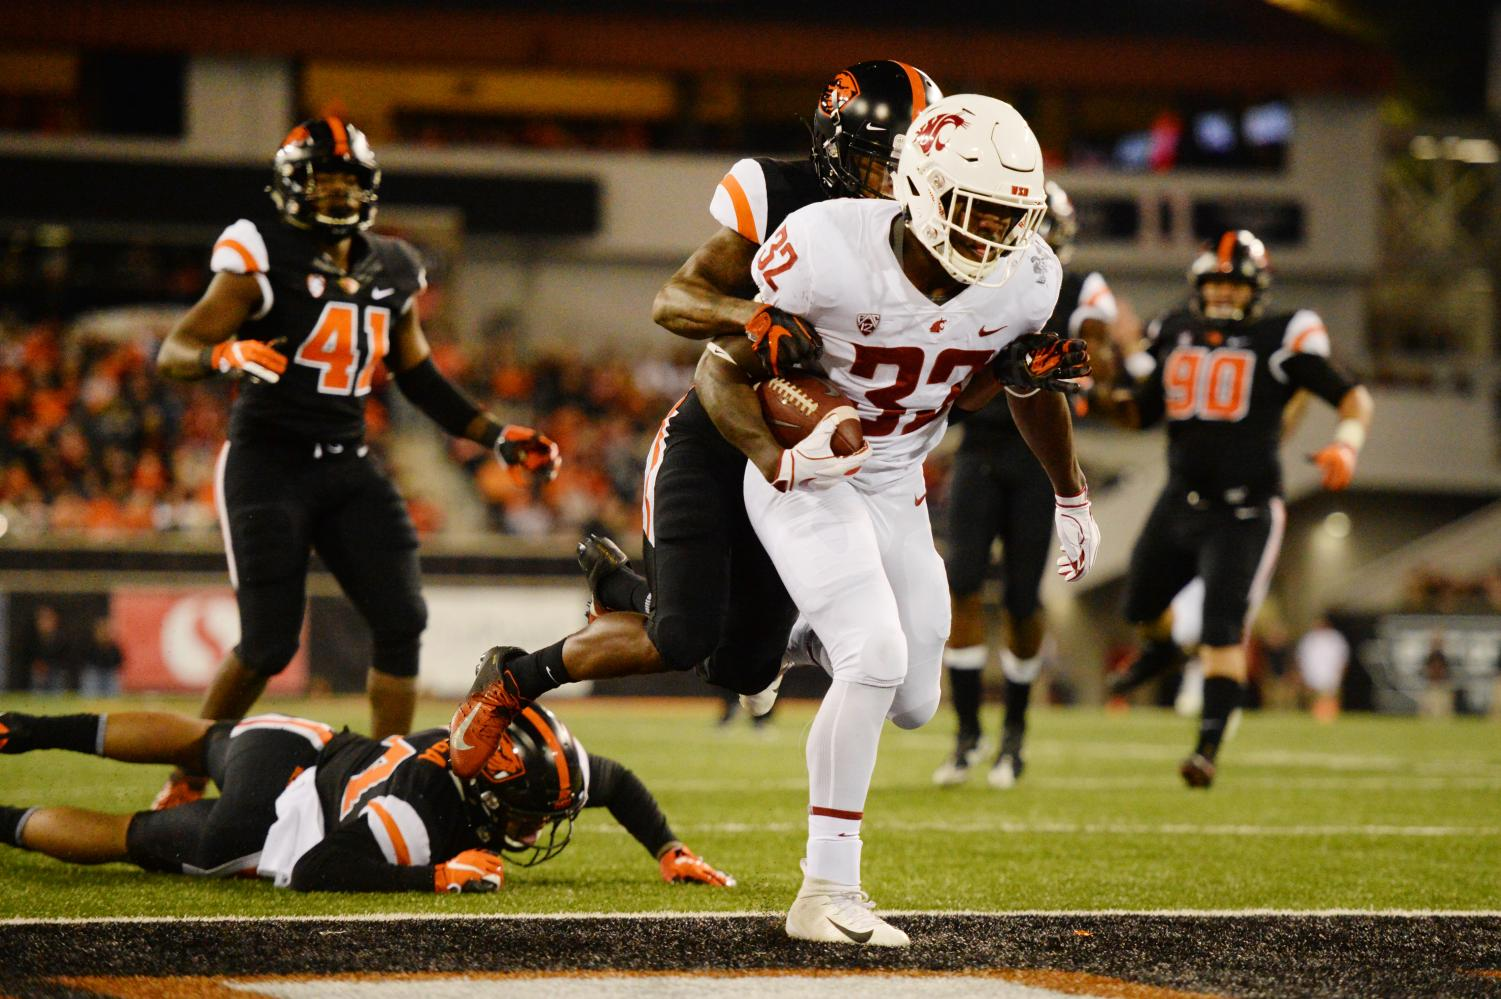 Redshirt junior running back James Williams breaks through the Oregon State University defense and runs the ball into the end zone for a touchdown in the second quarter Saturday at Reser Stadium in Corvallis.